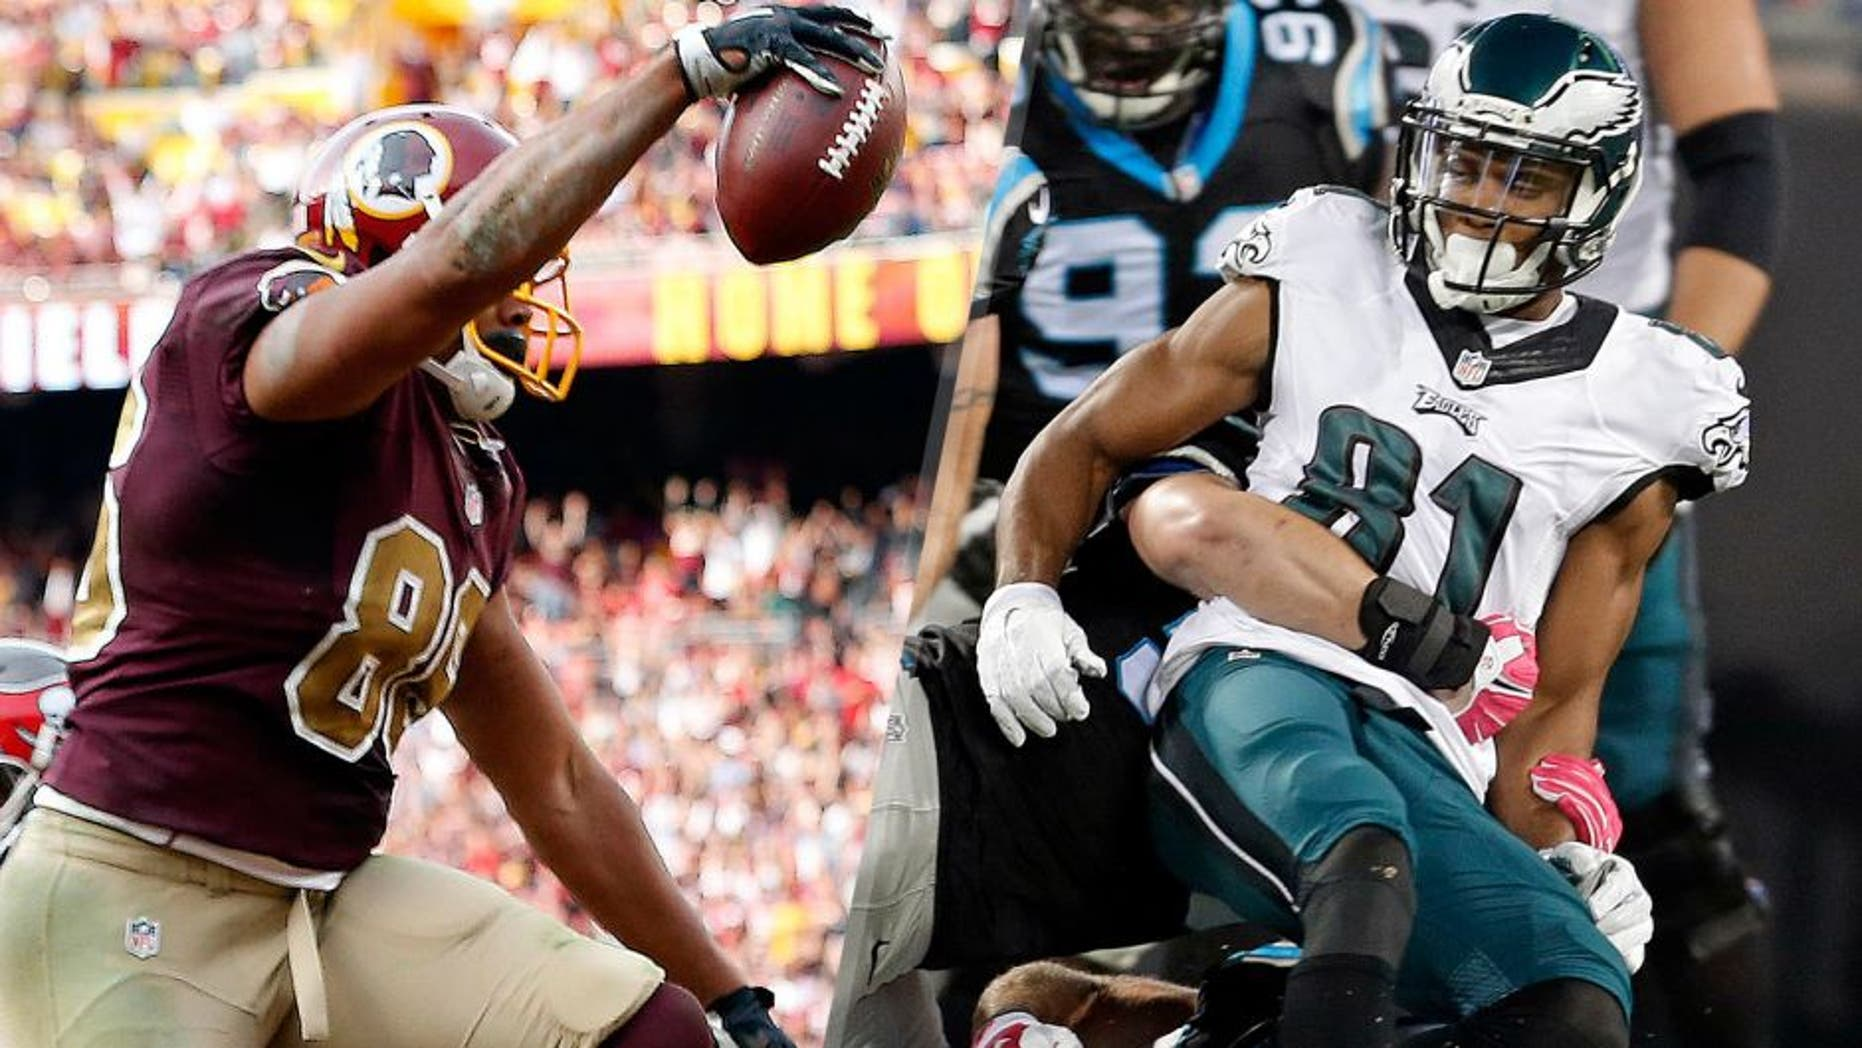 Washington Redskins tight end Jordan Reed (86) celebrates after catching the game-winning touchdown against the Tampa Bay Buccaneers in the final seconds of the fourth quarter at FedEx Field. The Redskins won 31-30. Mandatory Credit: Geoff Burke-USA TODAY Sports Carolina Panthers' Colin Jones, bottom, recovers the ball as Philadelphia Eagles' Jordan Matthews, right, is tackled in the first half of an NFL football game in Charlotte, N.C., Sunday, Oct. 25, 2015. The Panthers recovered the Matthews fumble. (AP Photo/Bob Leverone)